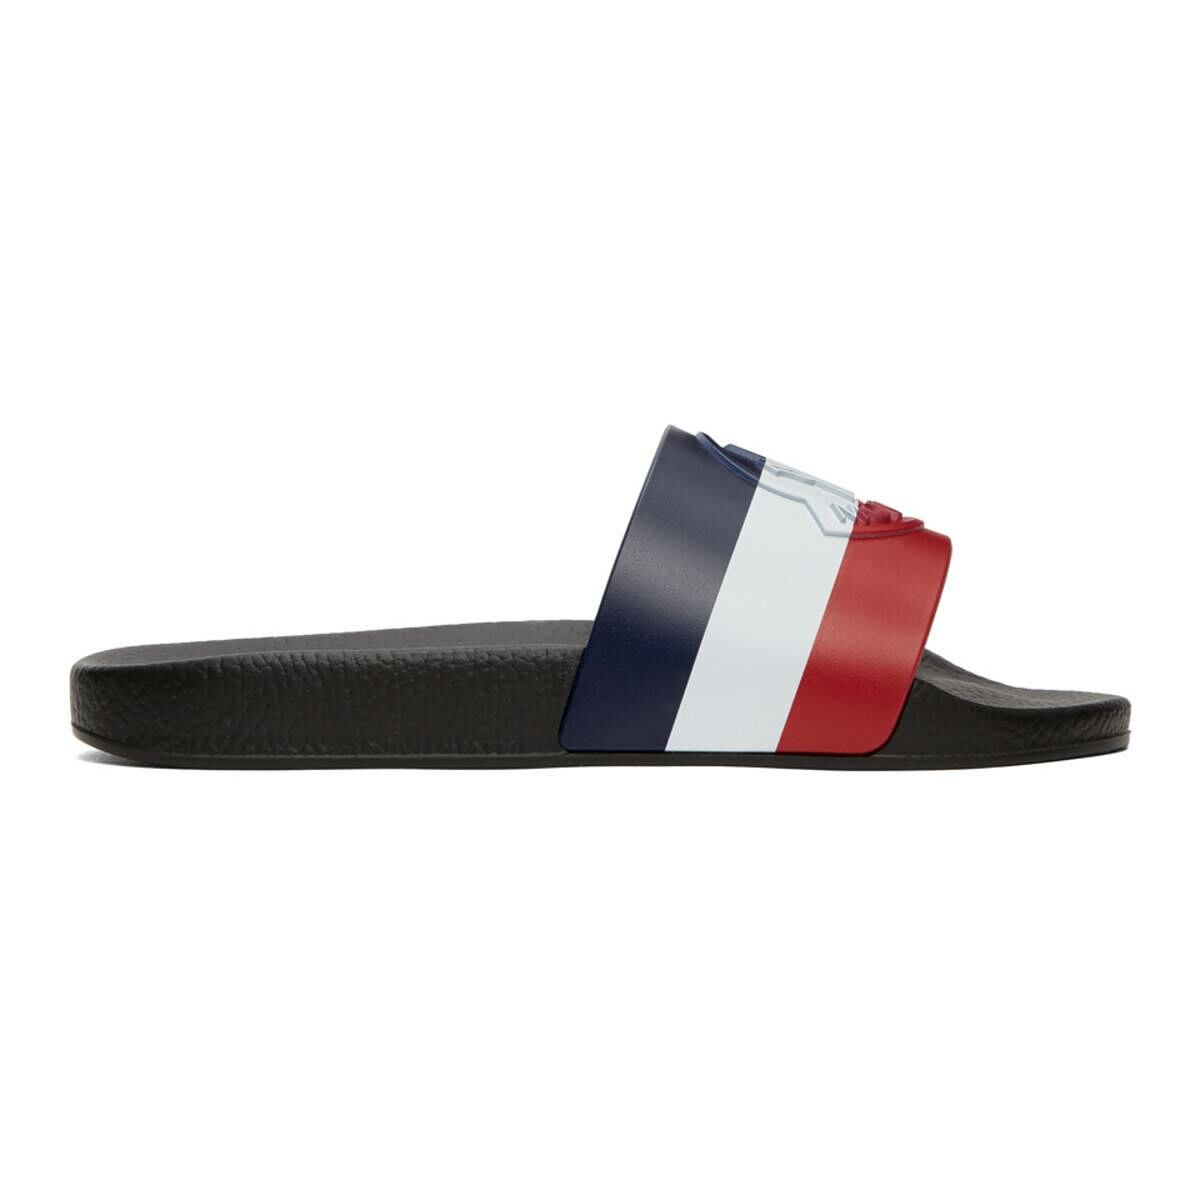 Moncler Multicolor Basile Slides Ssense USA MEN Men SHOES Mens SANDALS